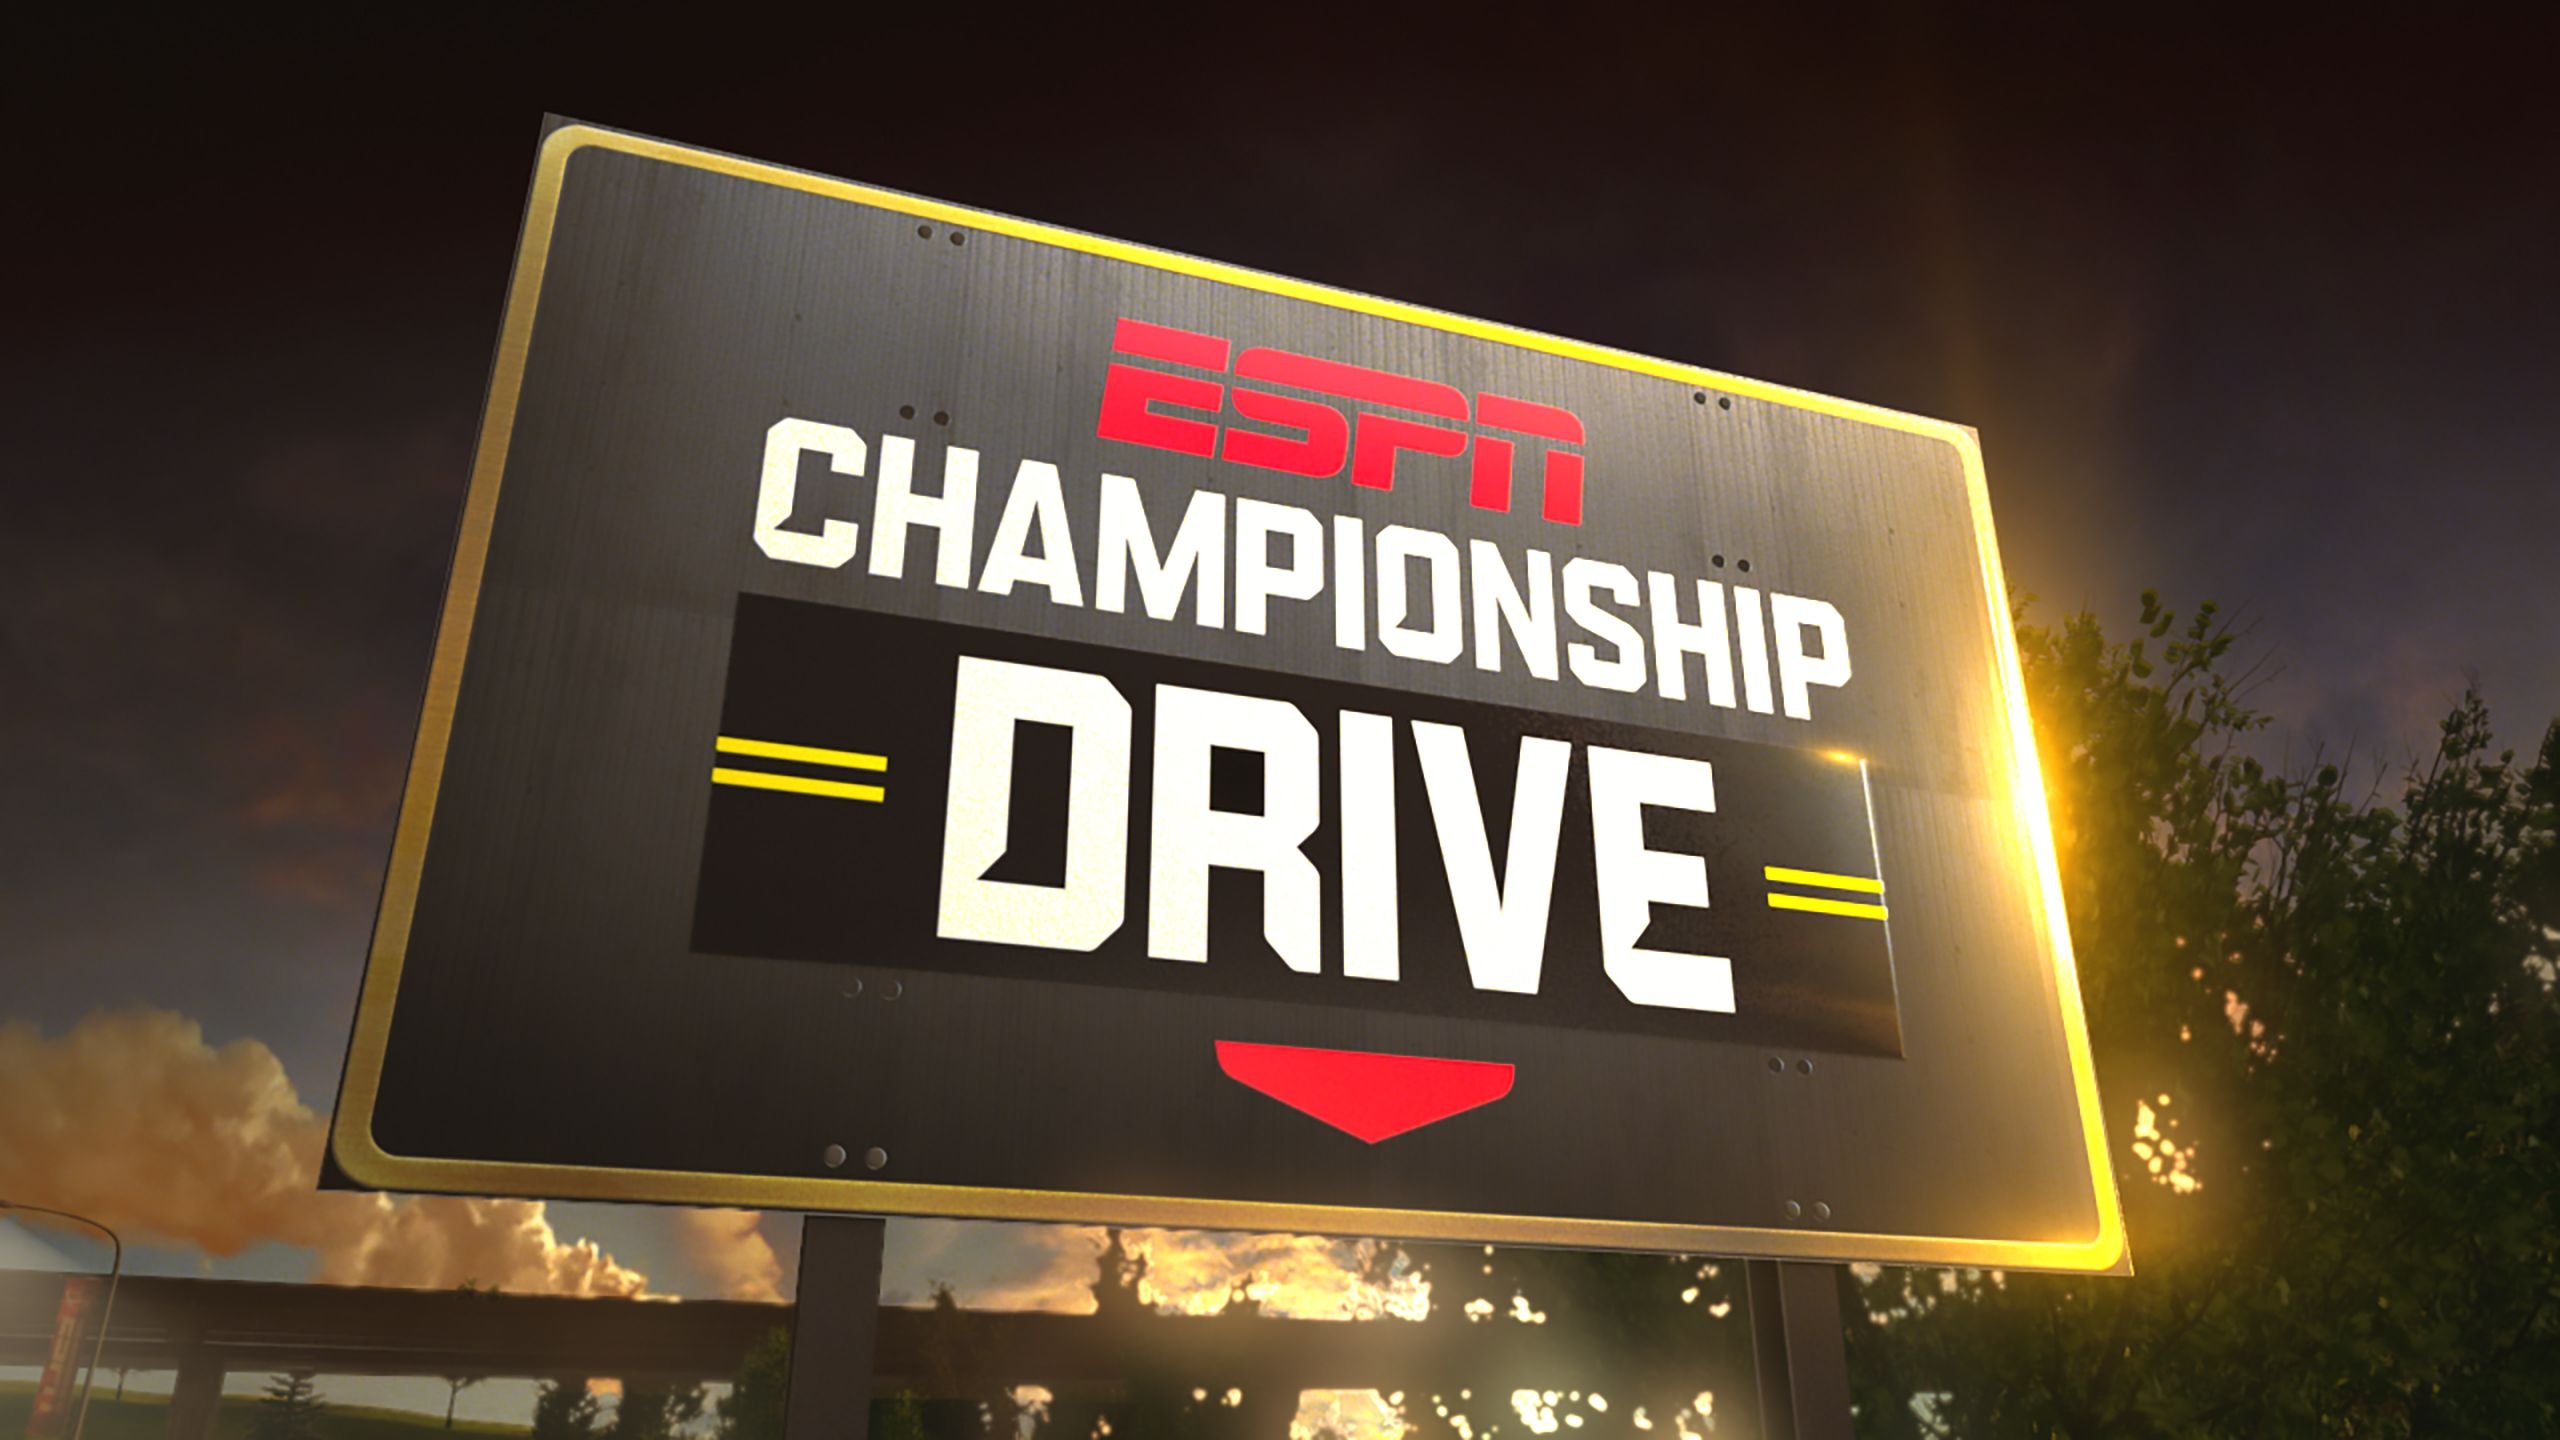 Sun, 11/19 - Championship Drive: Who's In? Presented by Northwestern Mutual